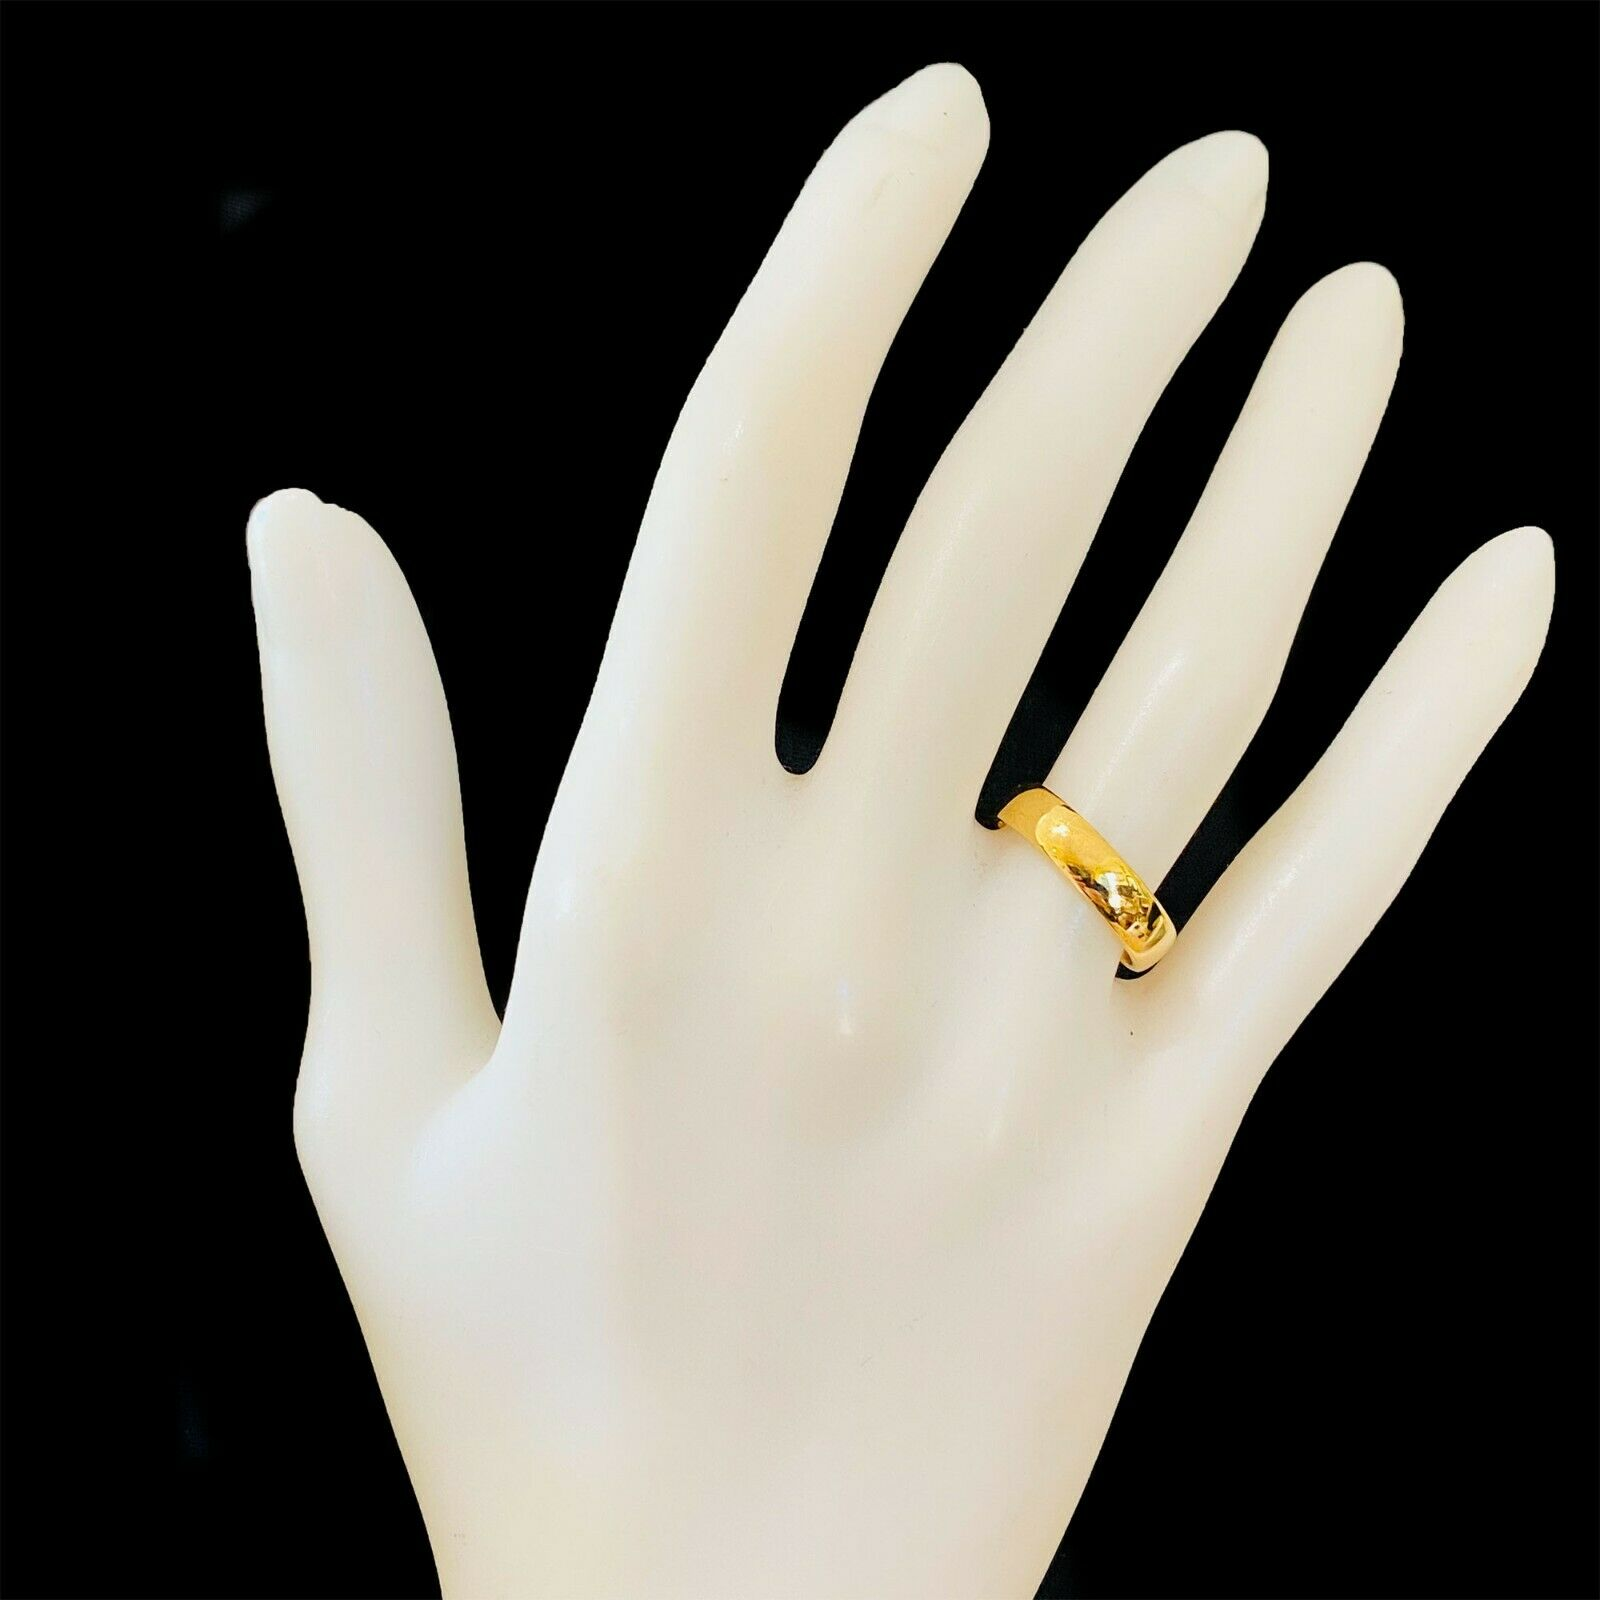 Vintage 22ct, 22k, 980 solid yellow gold D-shaped wedding ring